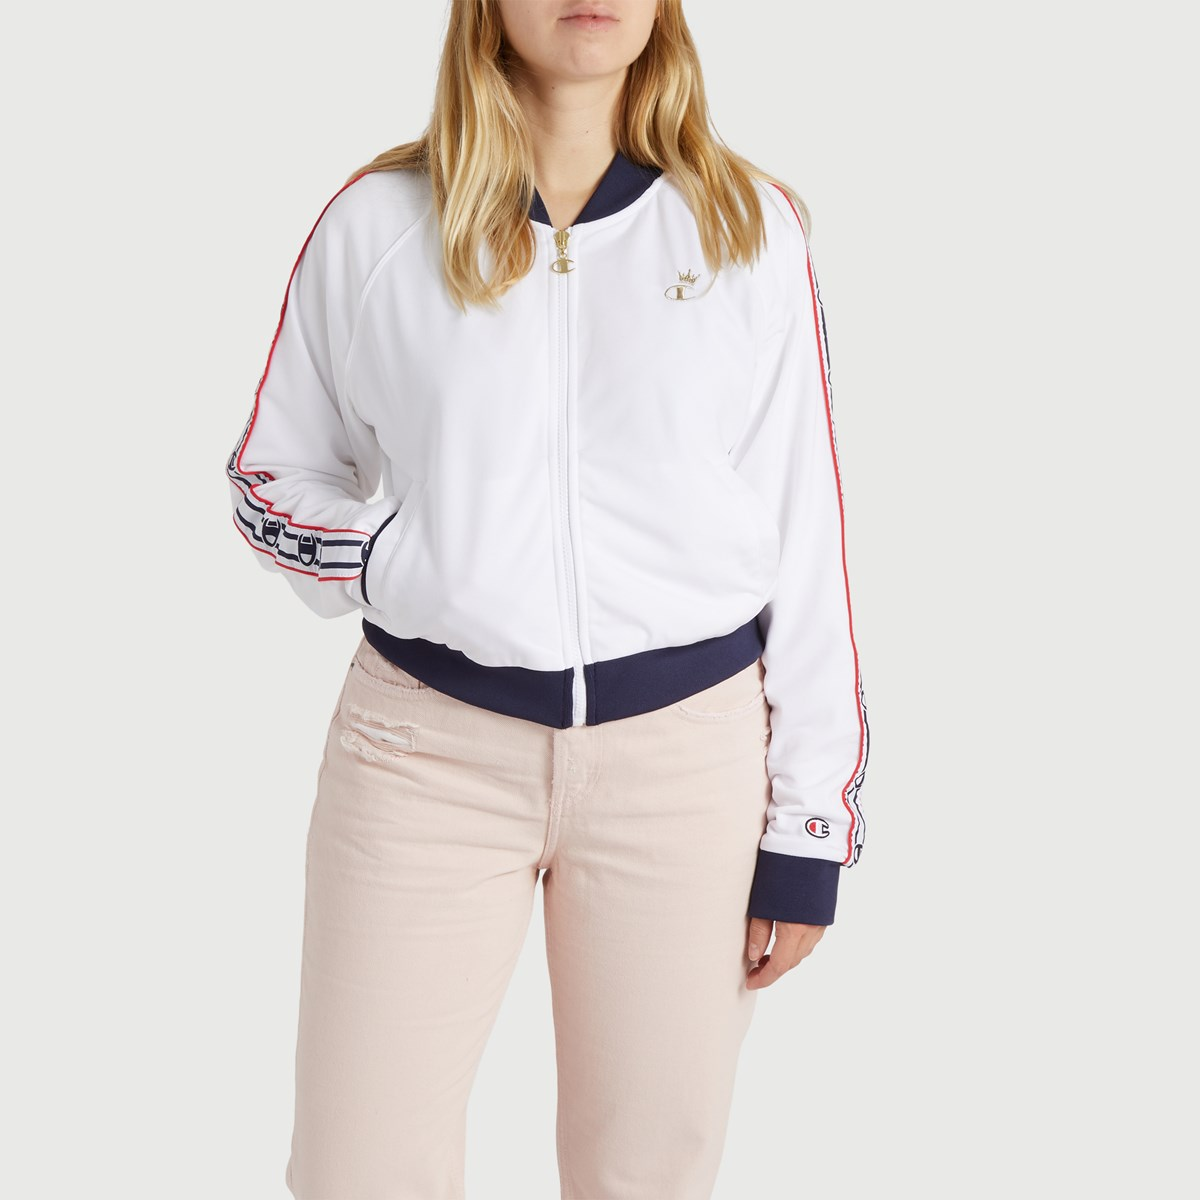 Women's Track Jacket in White